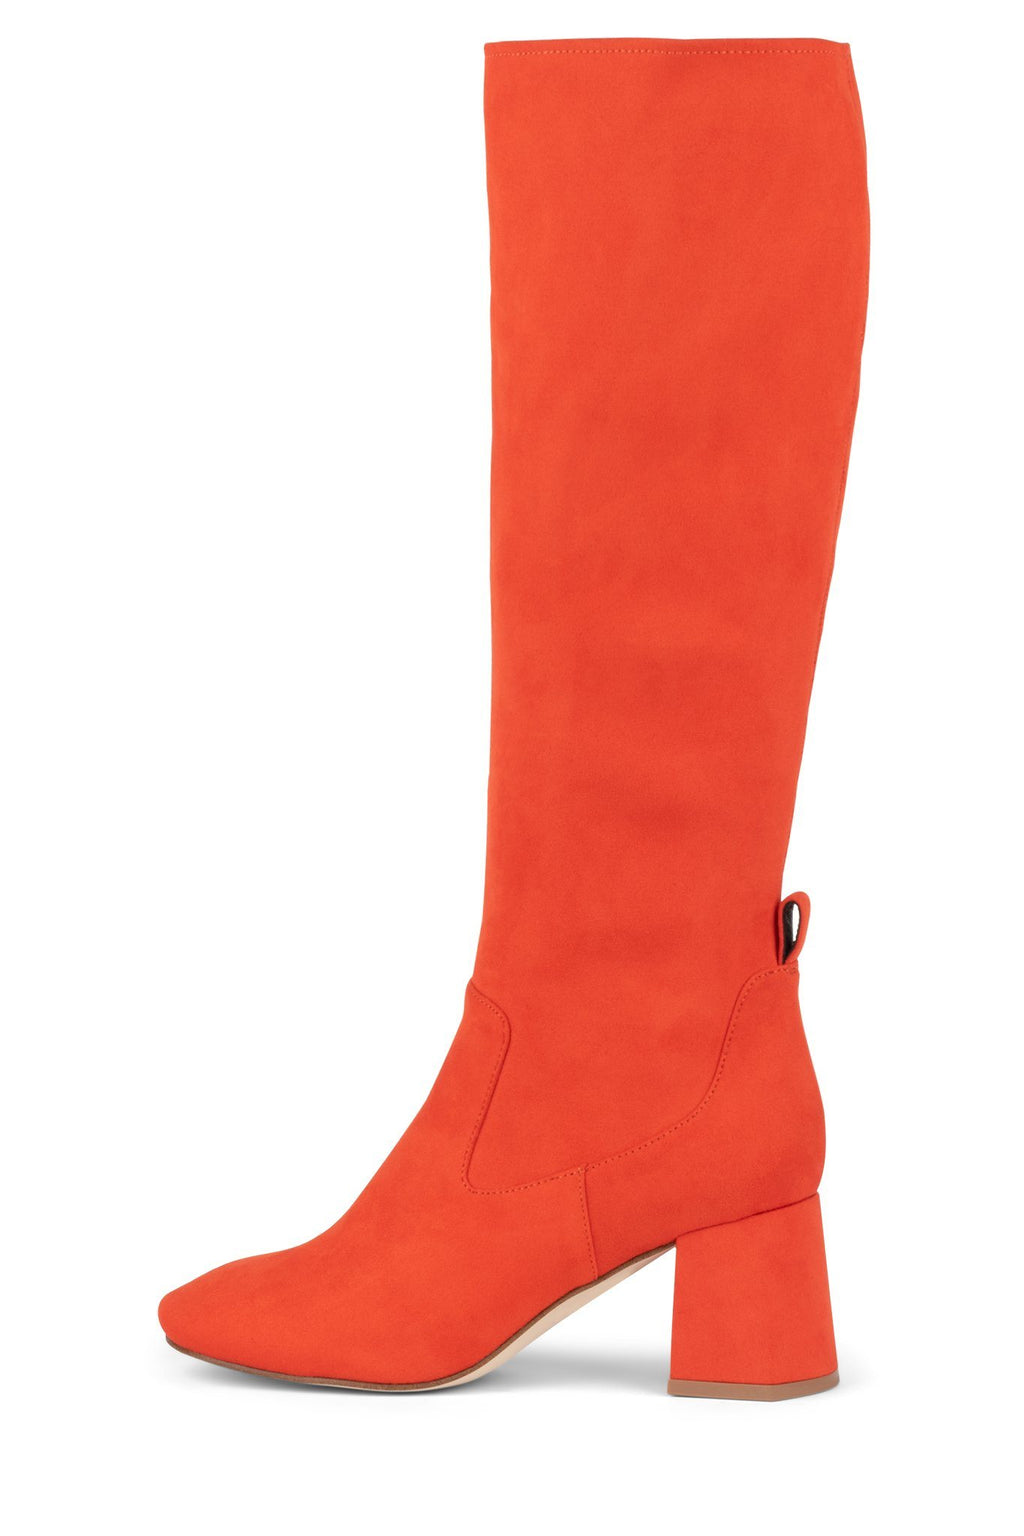 SERINE Knee-High Boot YYH Orange Suede 6